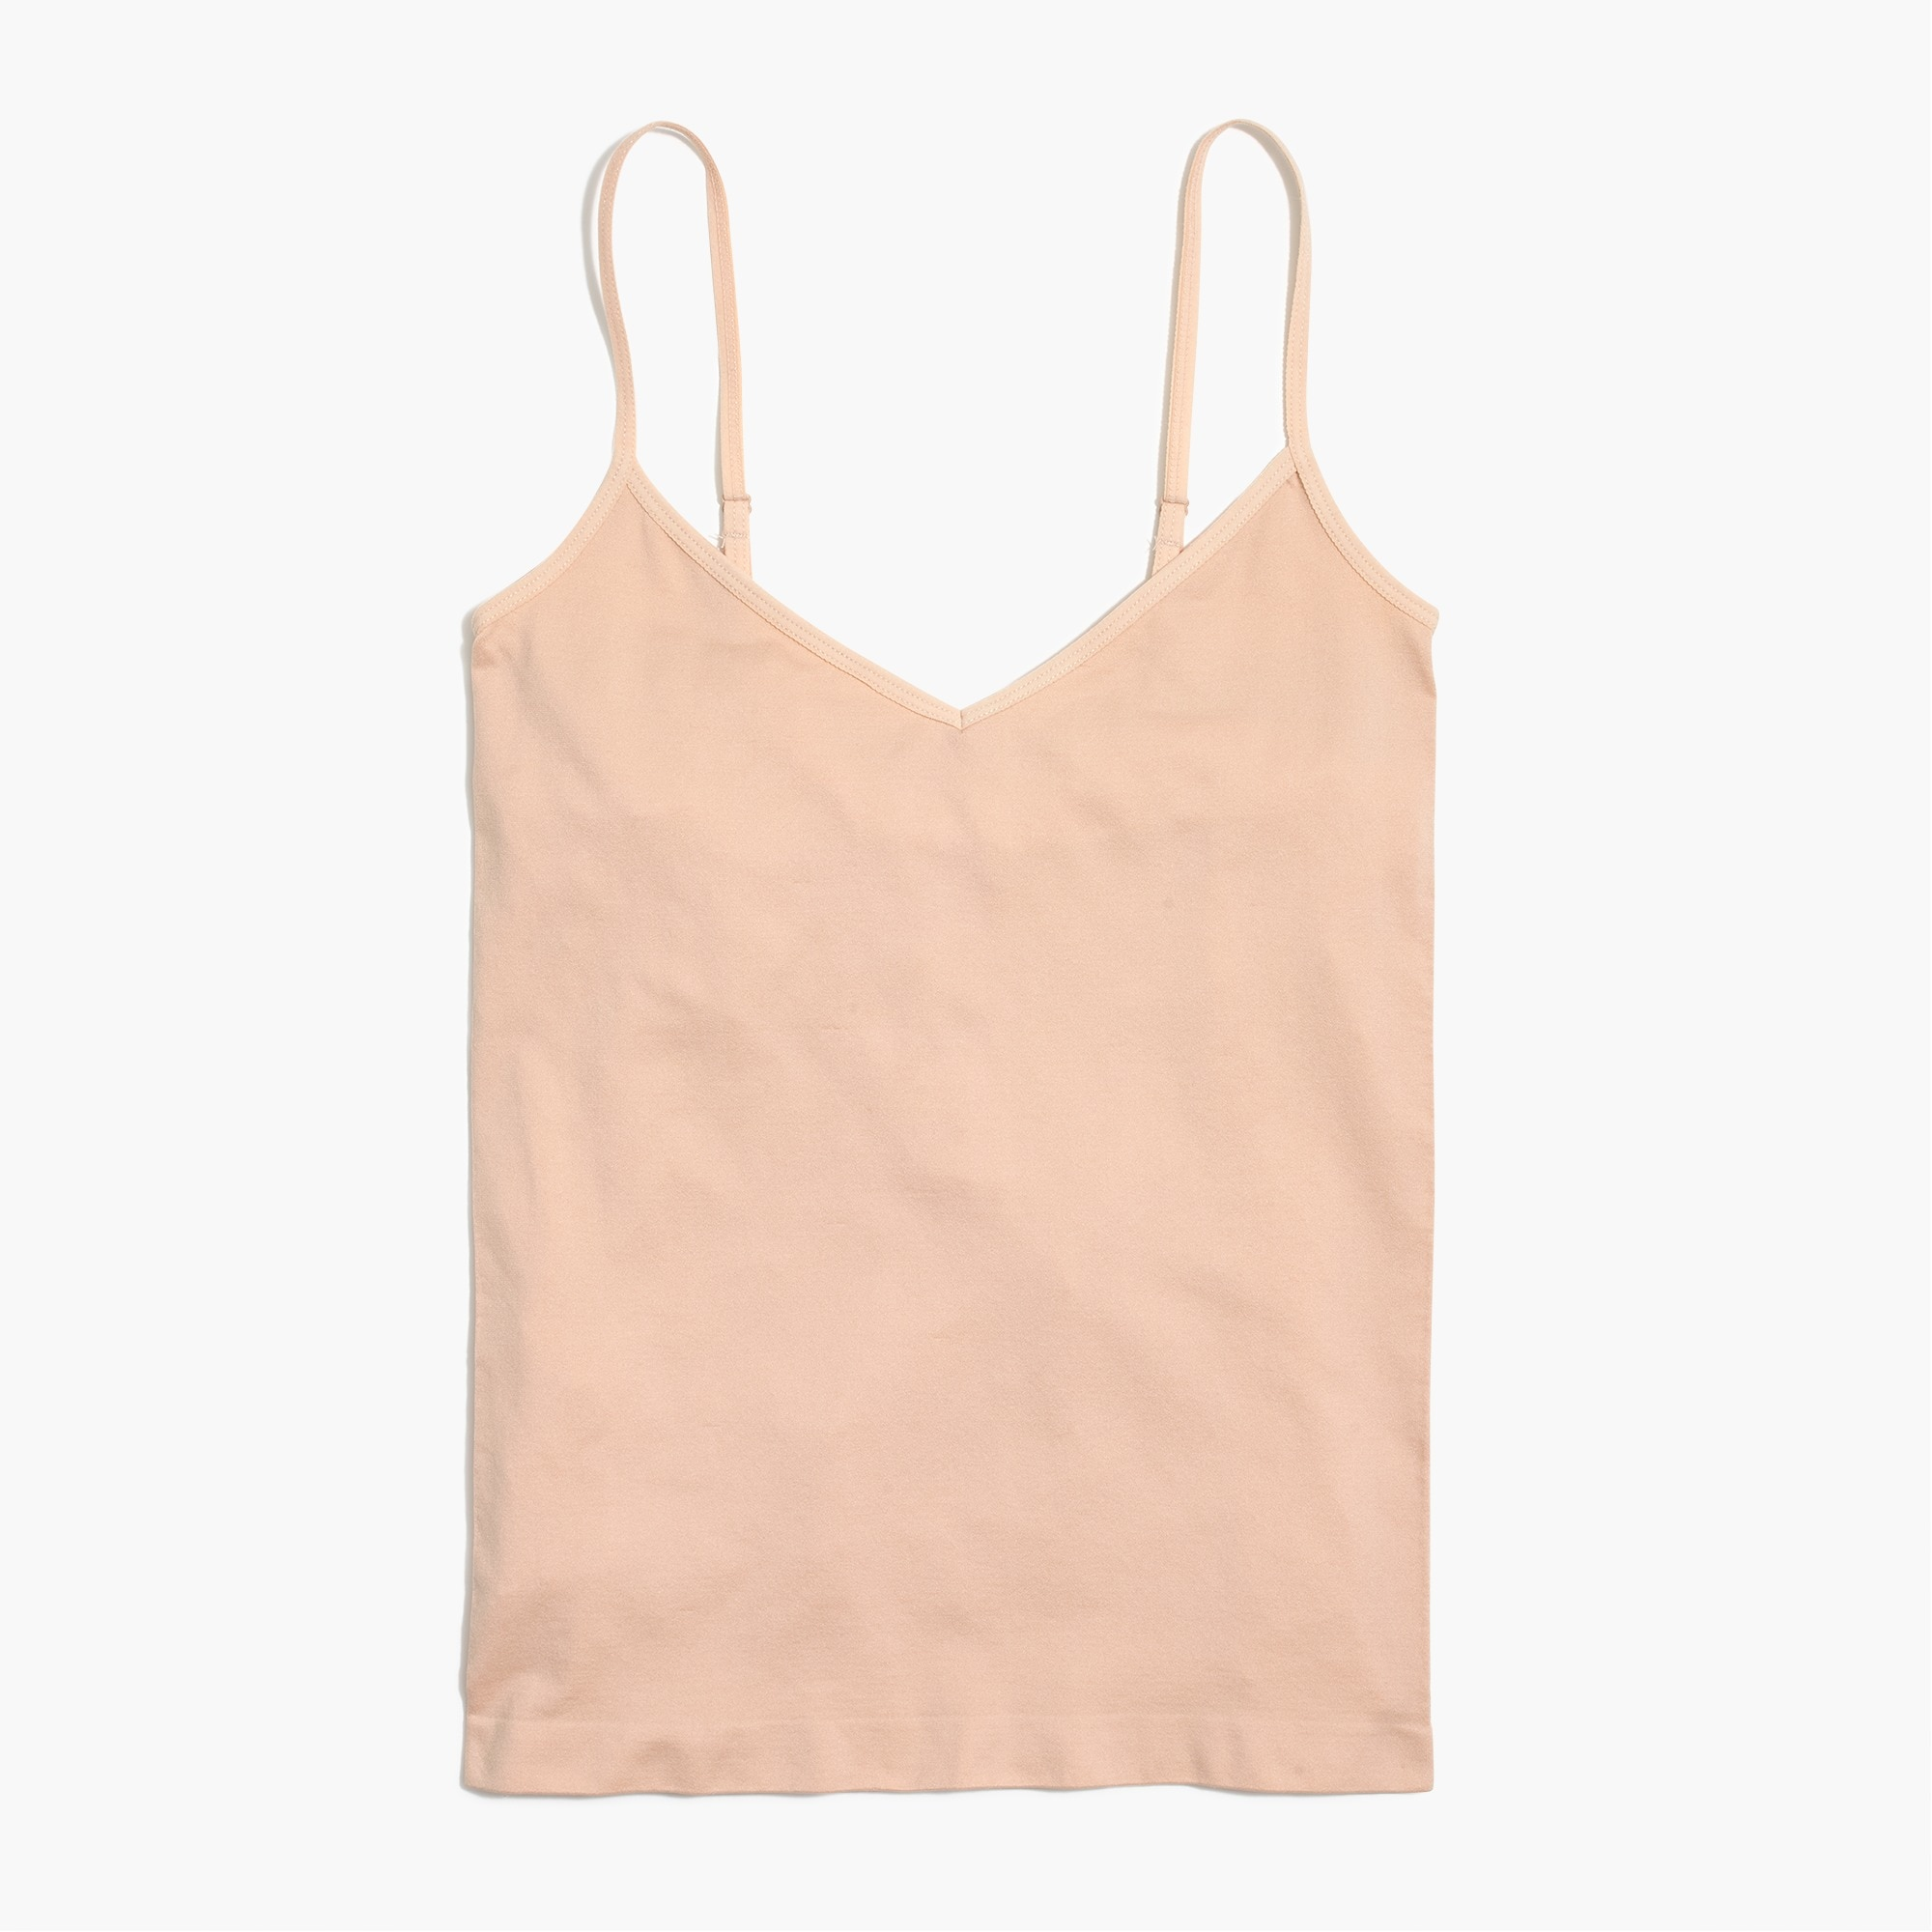 Image 2 for Seamless cami top